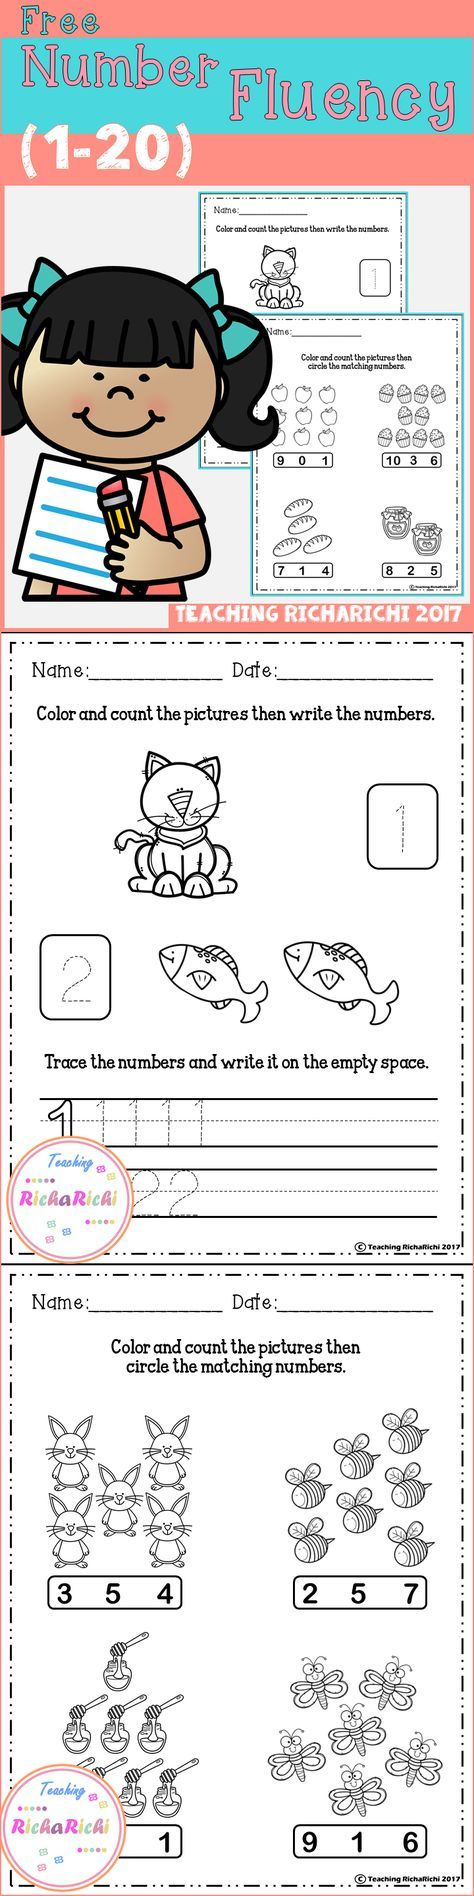 18 best Numbers 16-20 images on Pinterest | Math activities, Early ...